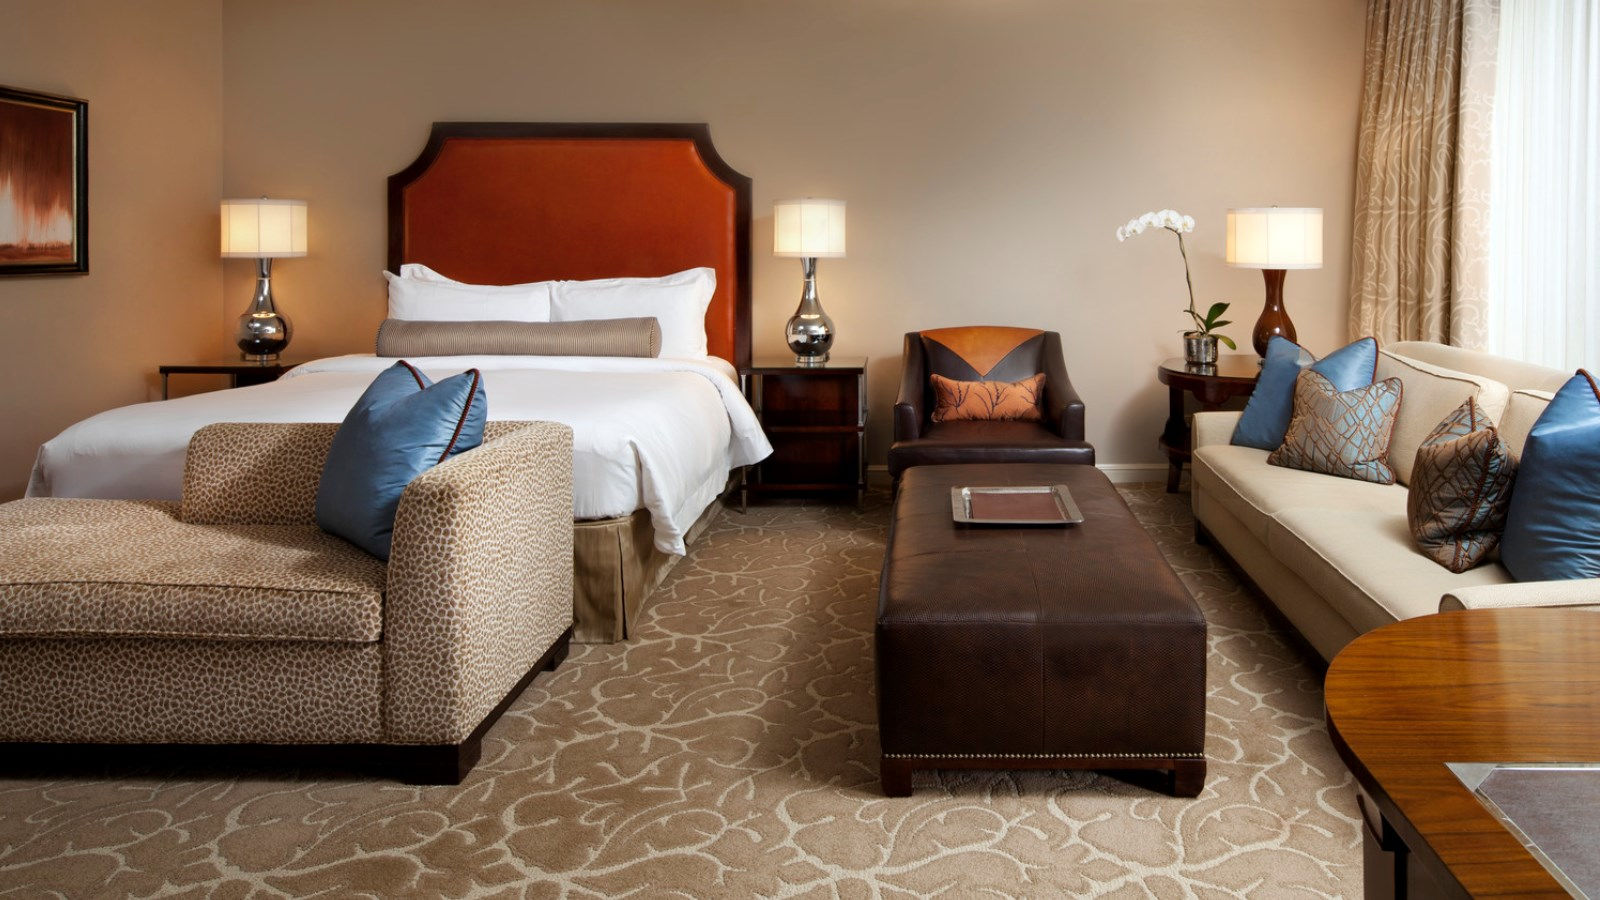 Astor Grand Luxe Guest Room - Luxury Hotels in Houston - The St. Regis Houston Hotel